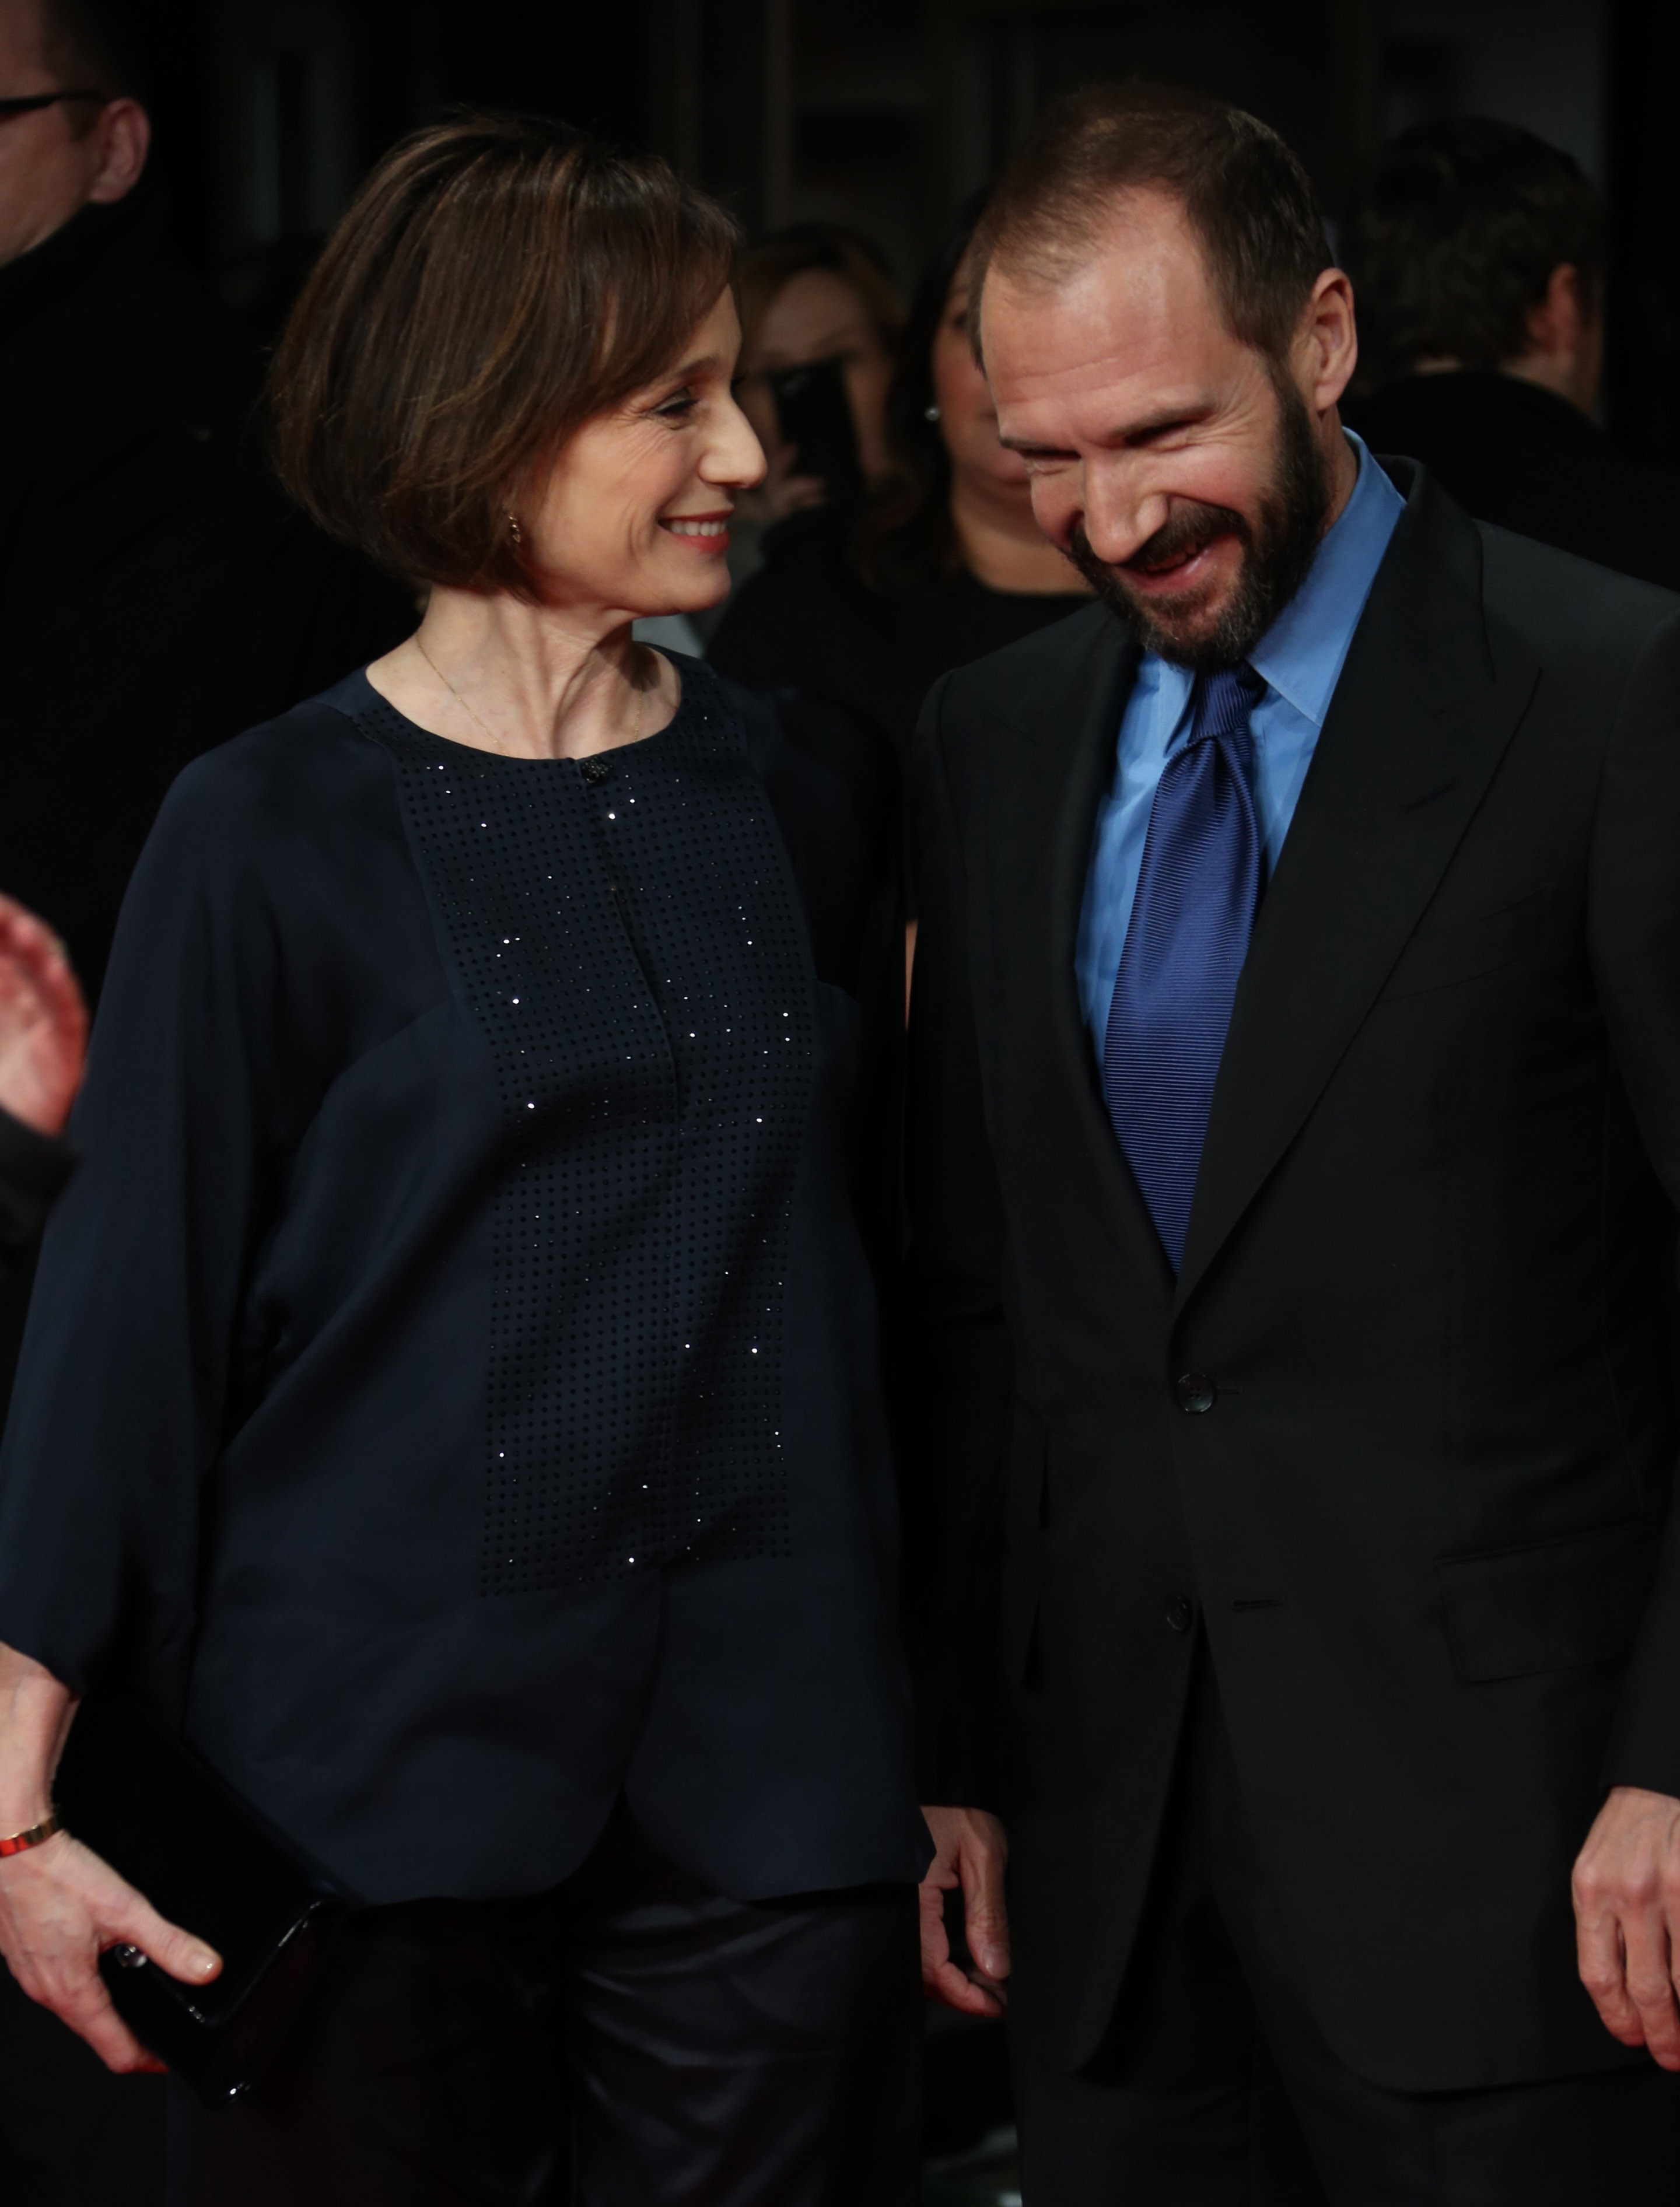 """Visibly happy: Actors Kristin Scott Thomas and Ralph Fiennes arrive on the red carpet Monday for the British premiere of """"The Invisible Woman"""" in London."""